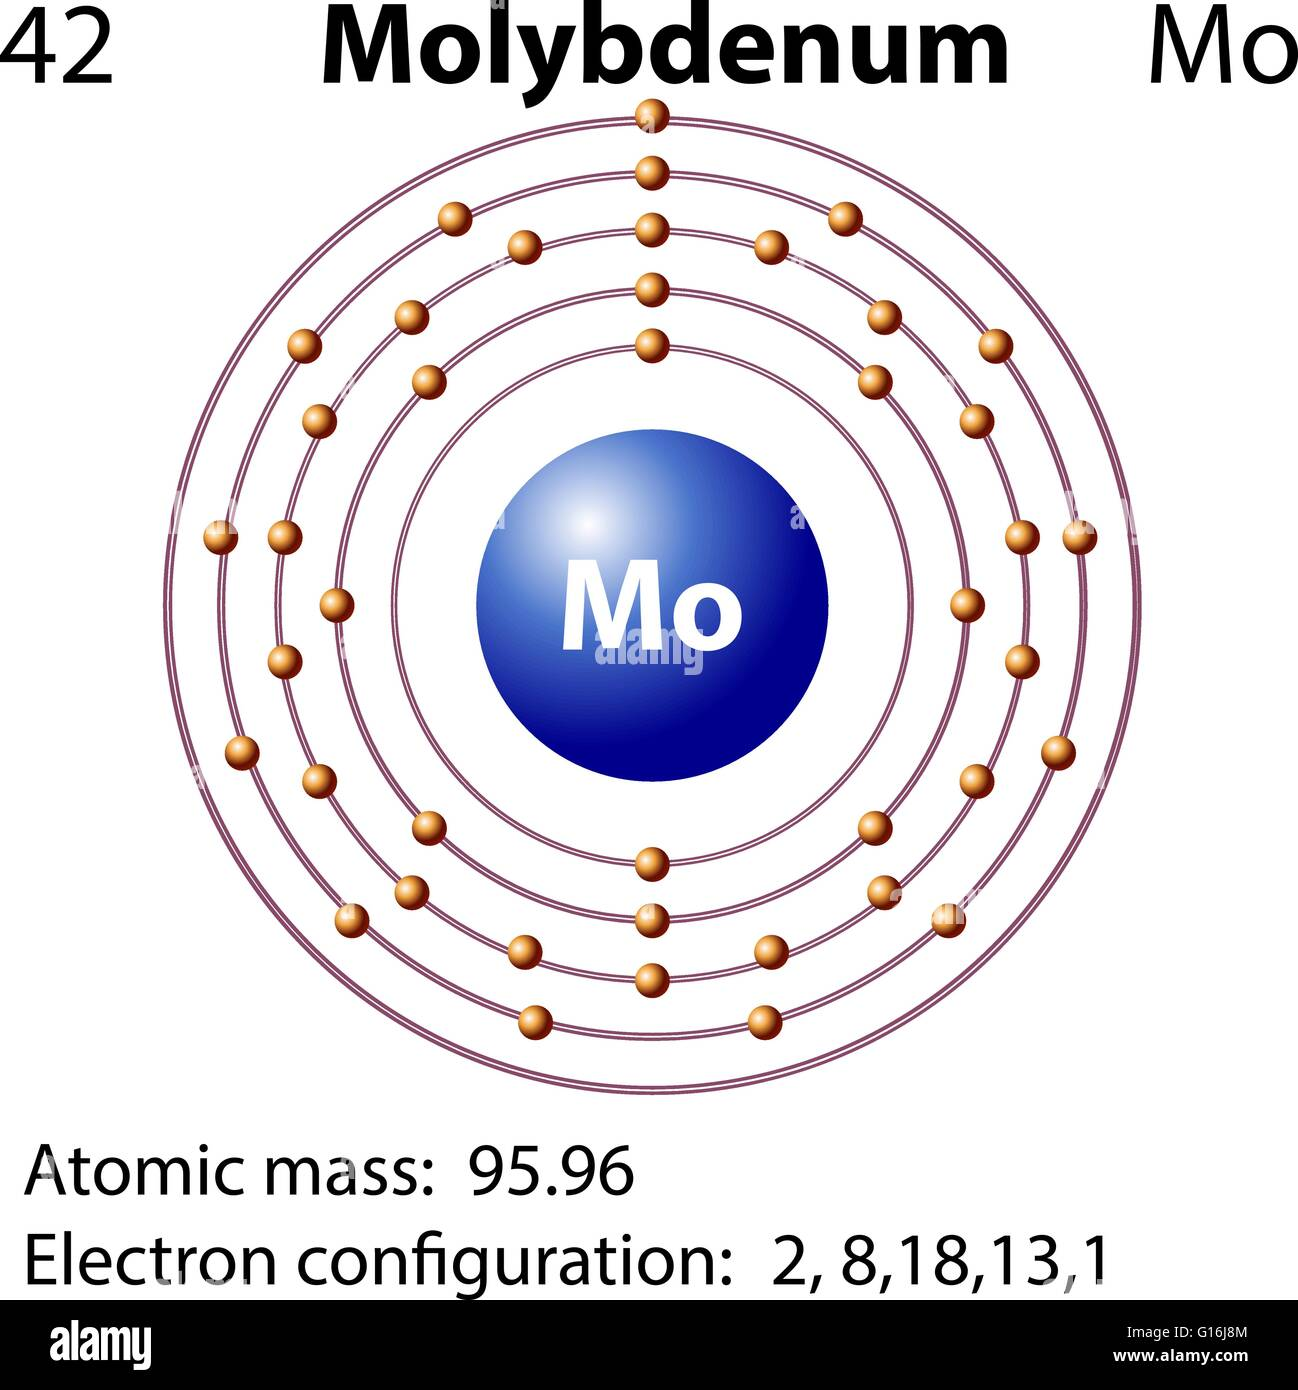 Symbol For Molybdenum Gallery Meaning Of Text Symbols